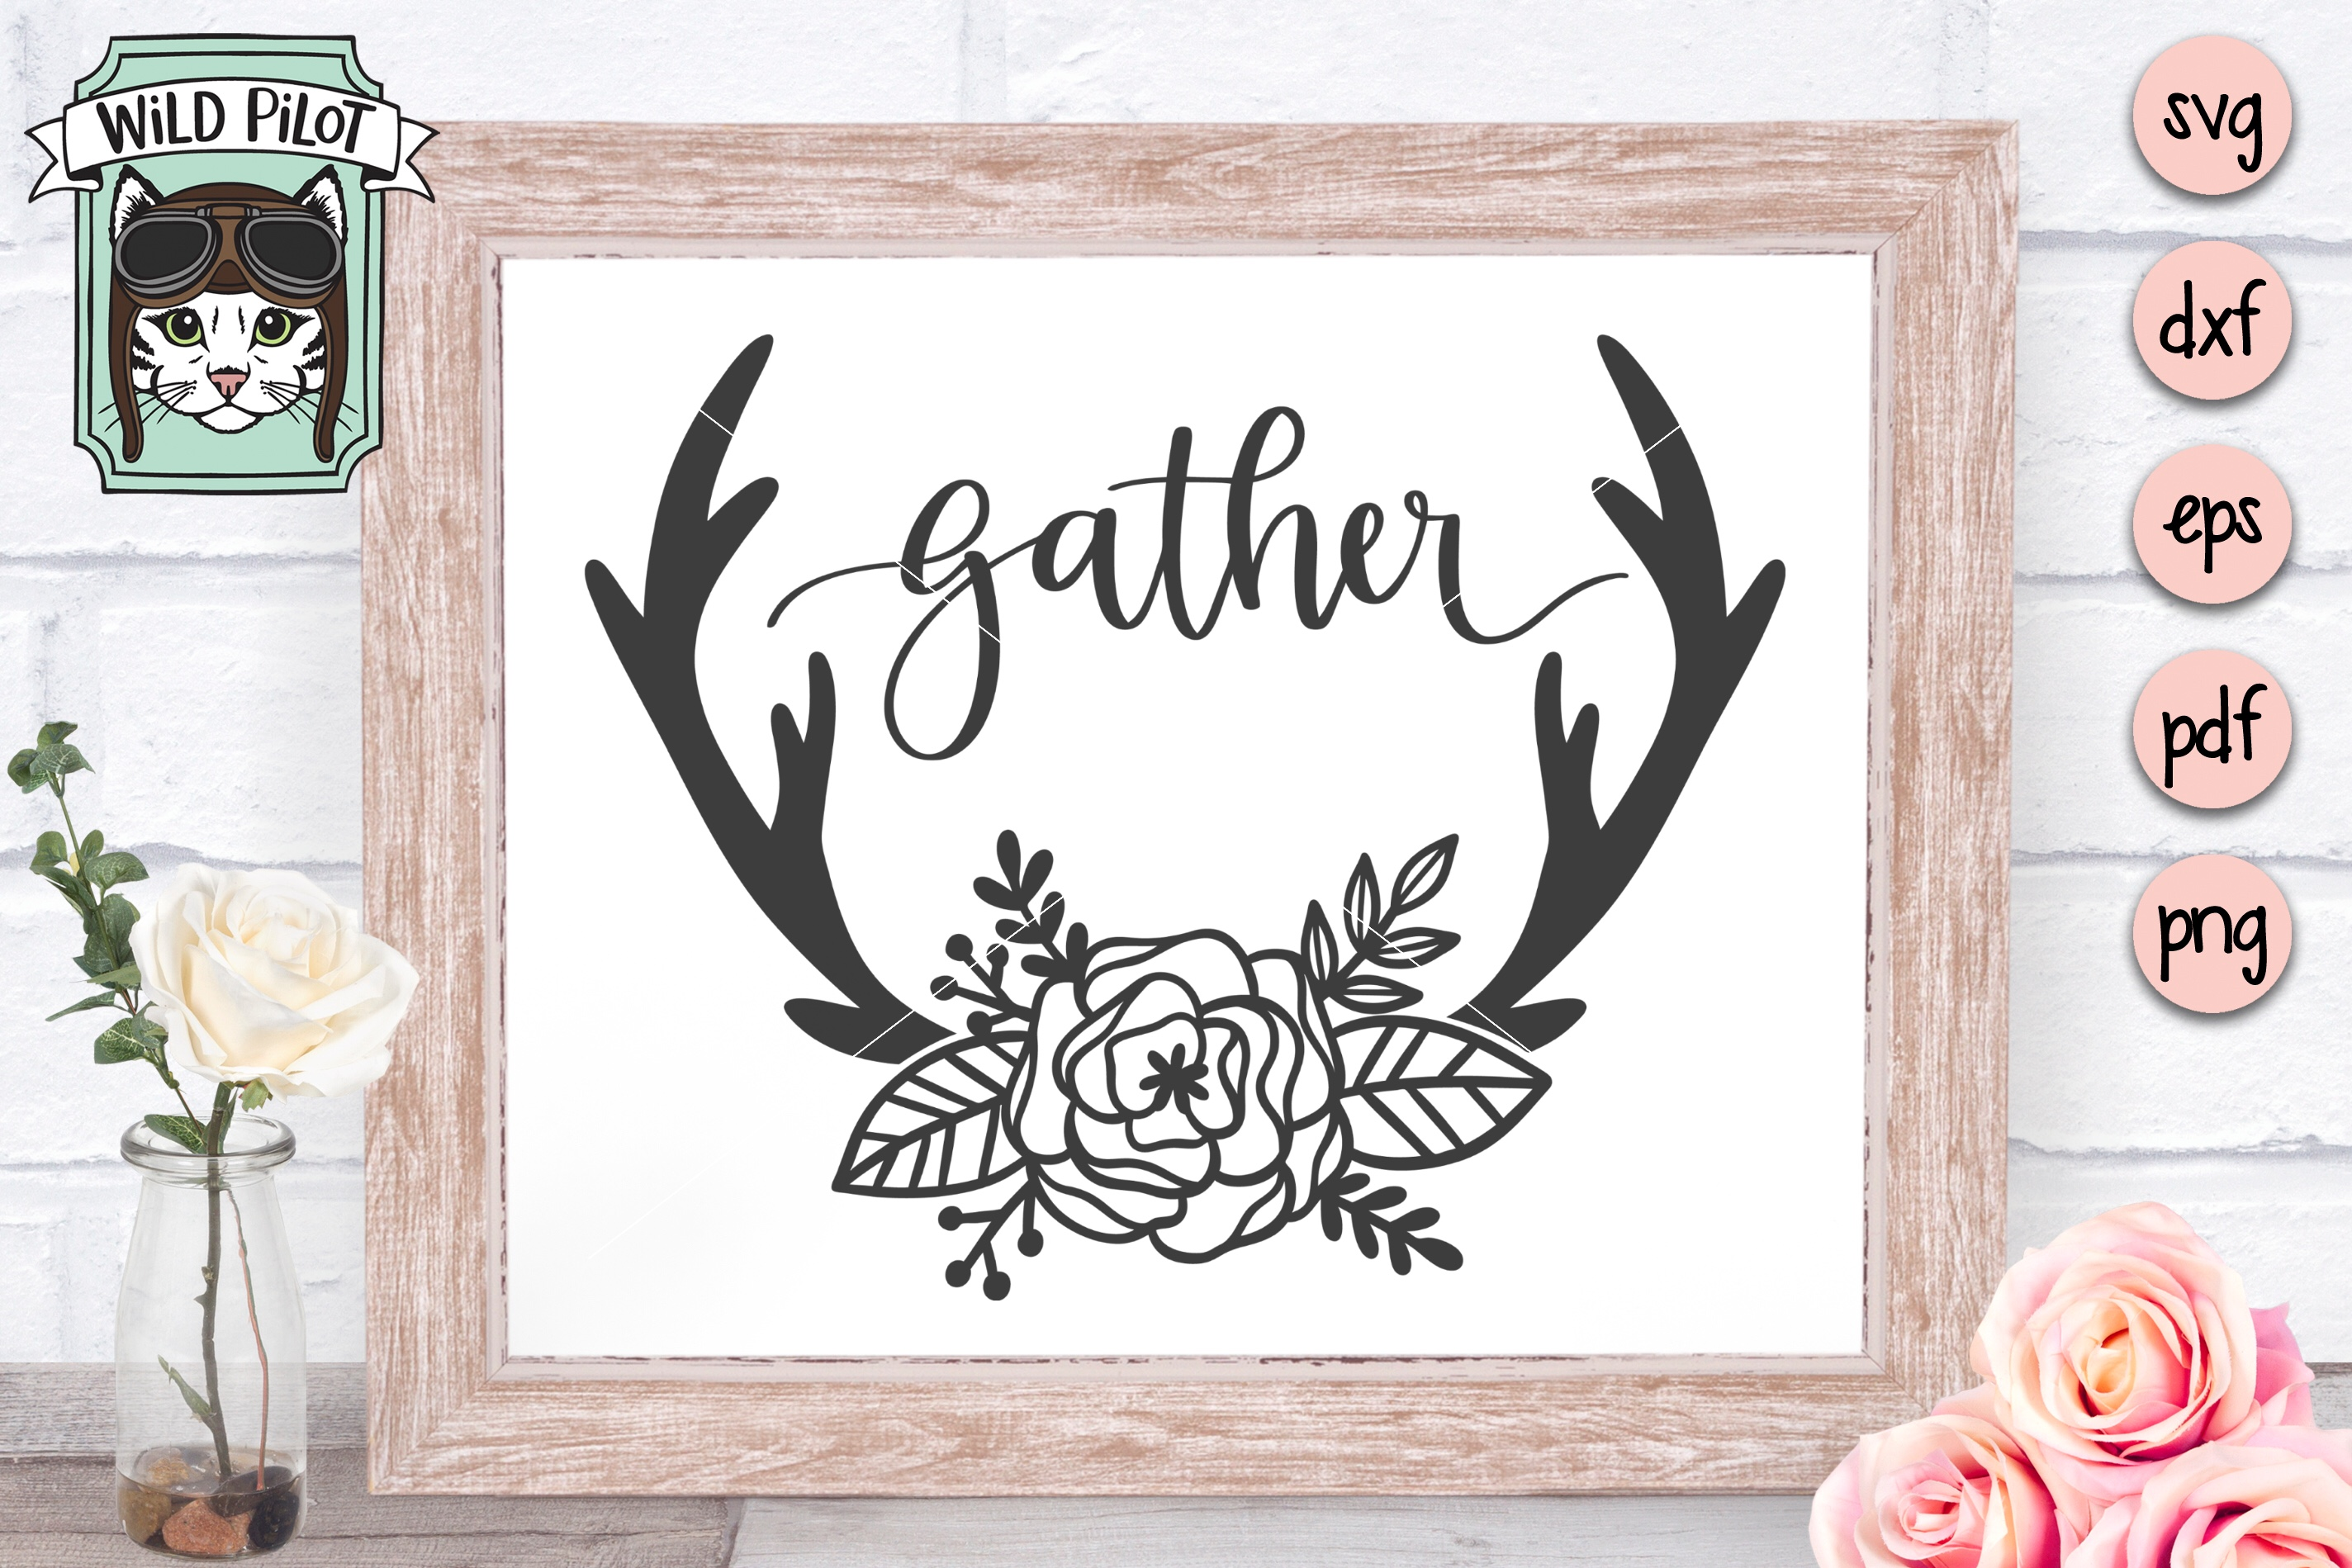 Gather SVG, Deer Antlers cut file, Flowers, Home Decor example image 2